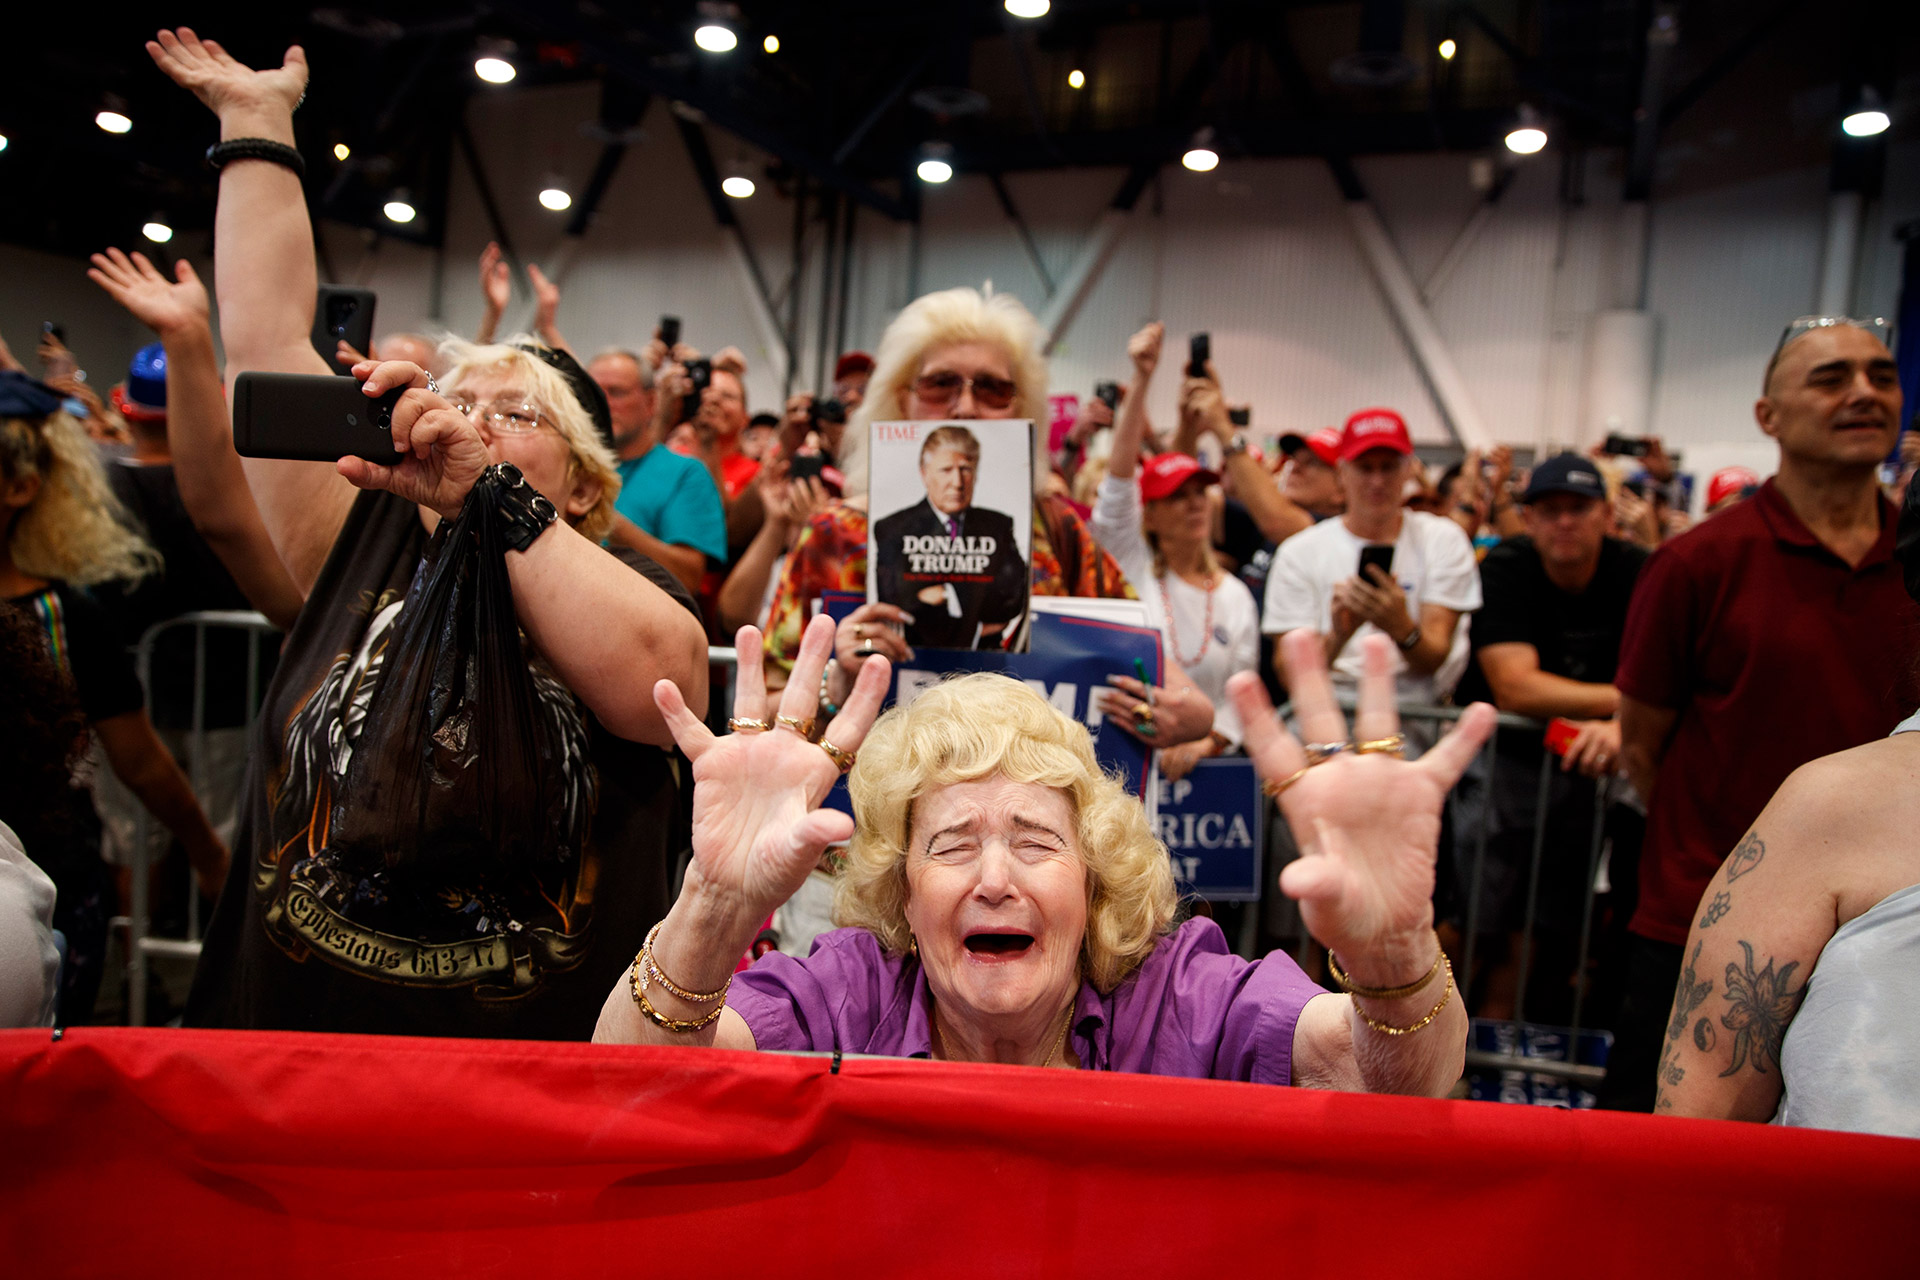 Supporters of President Donald Trump cheer